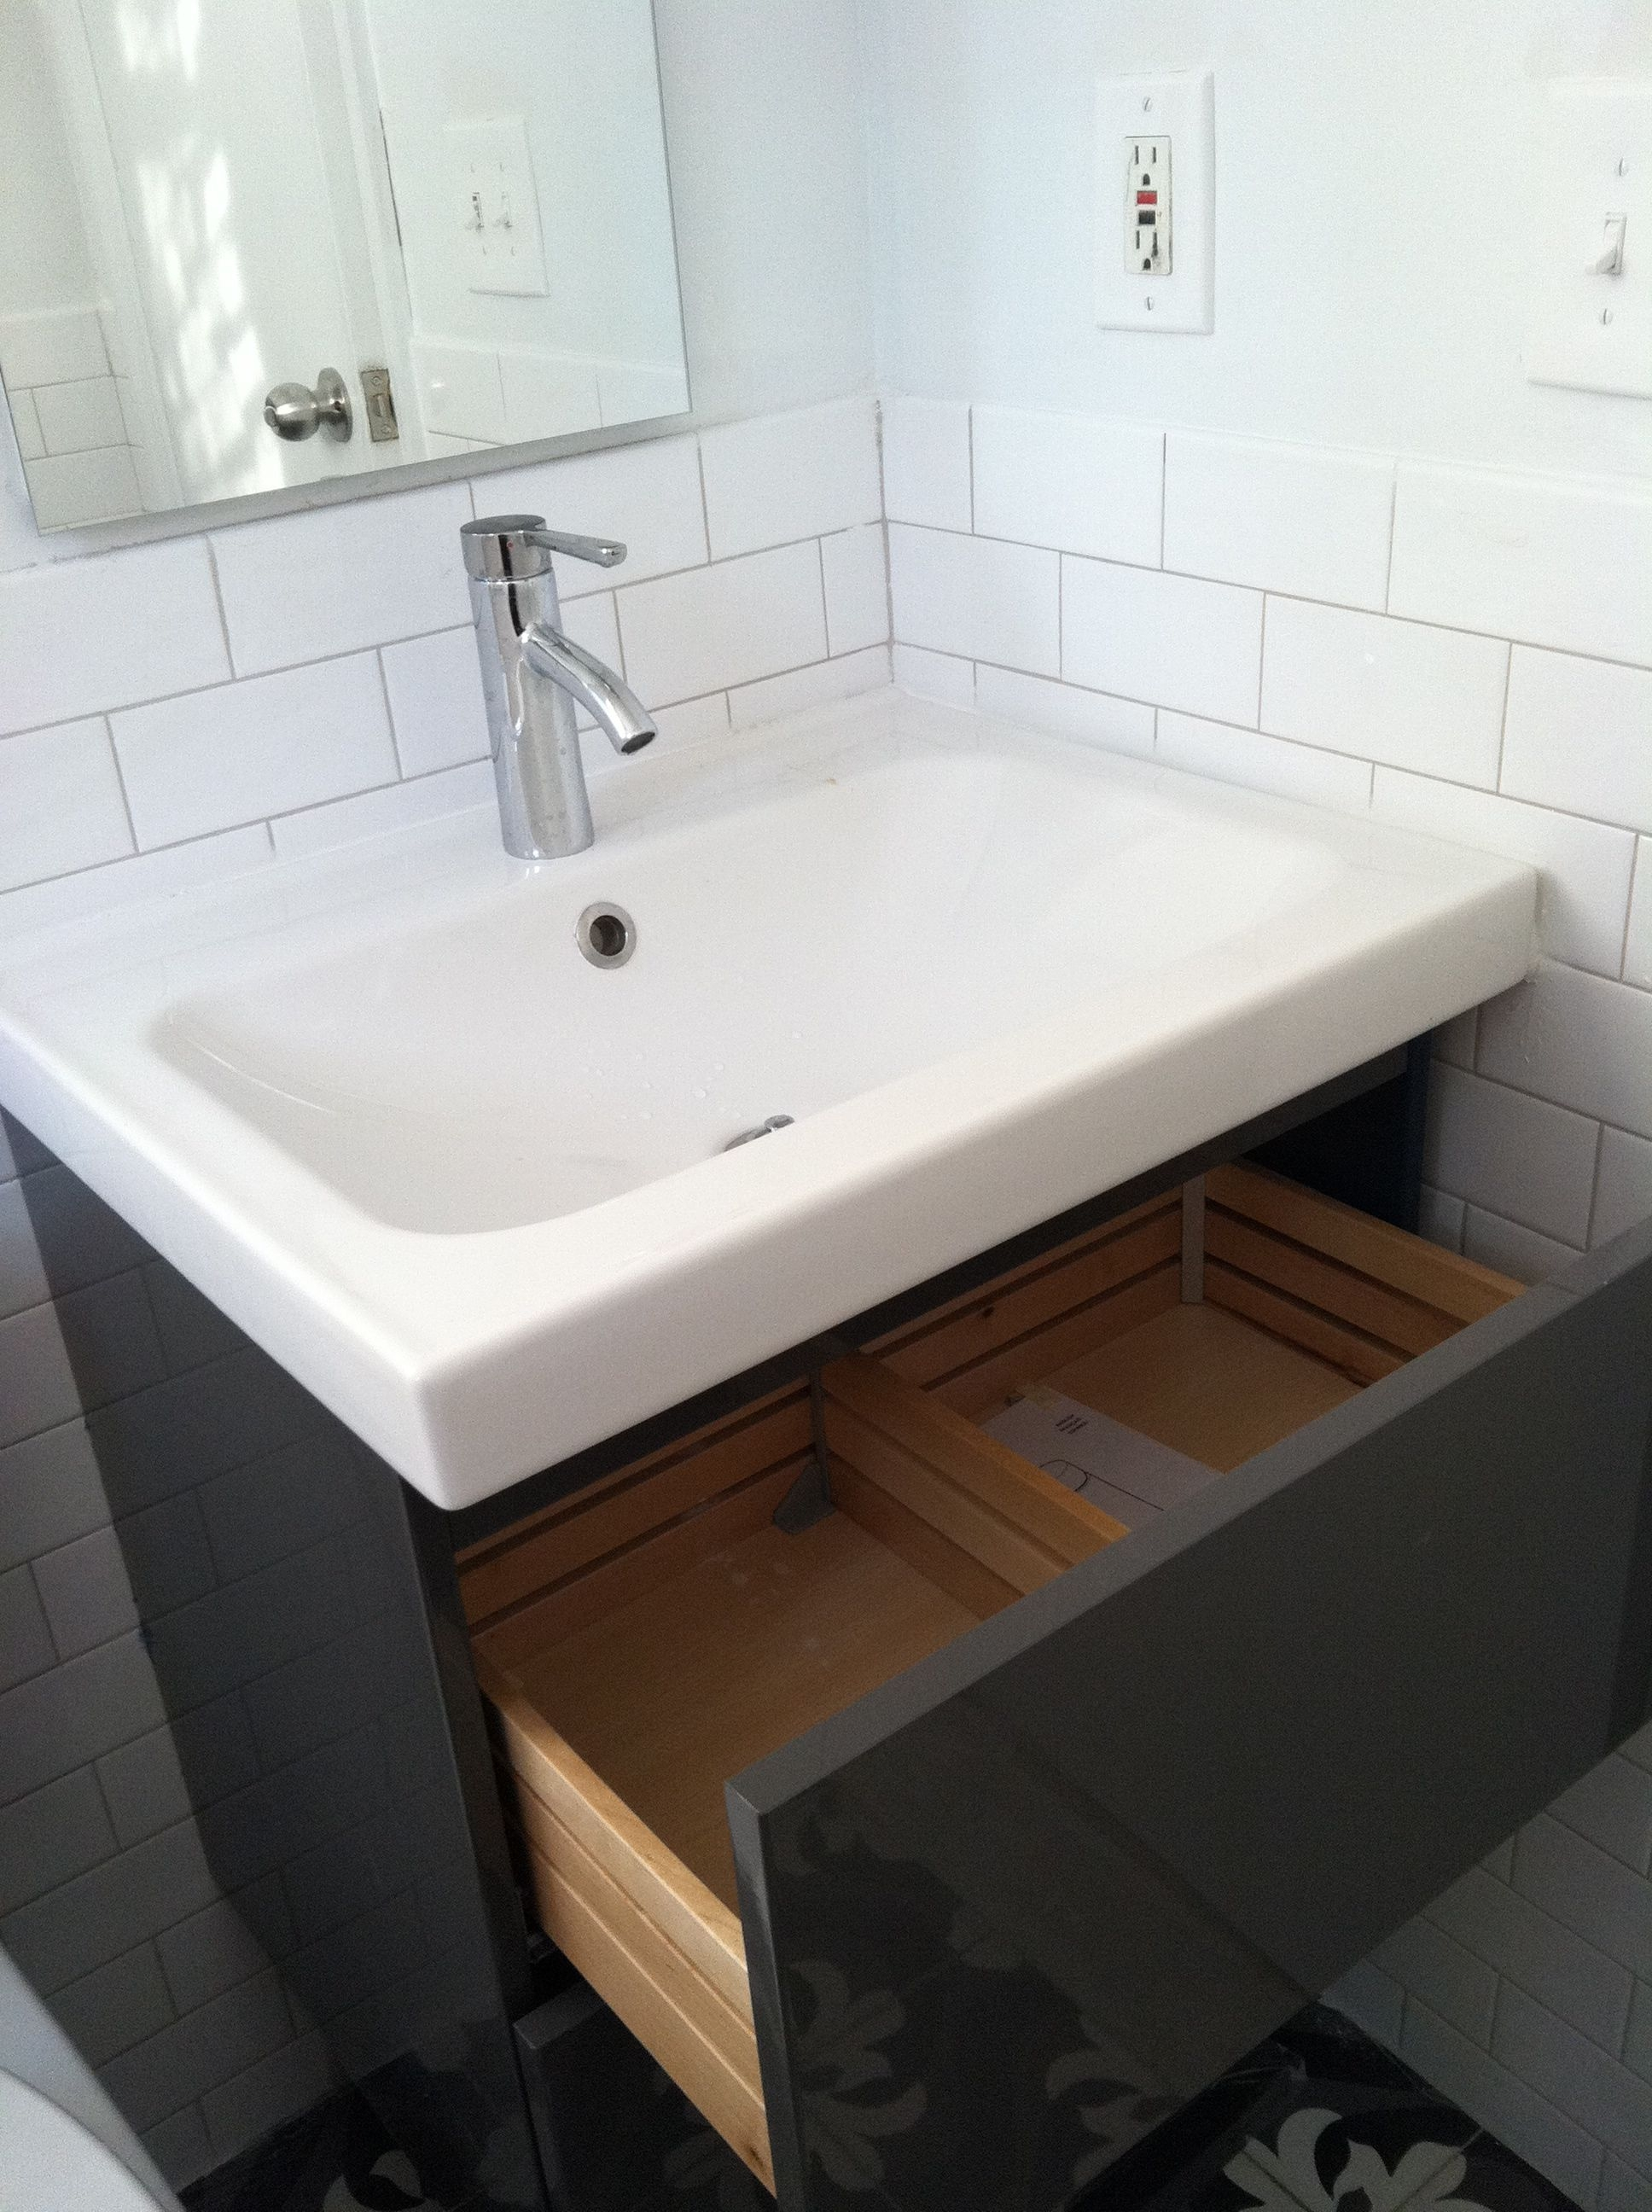 Ikea Bathroom Sinks And Taps